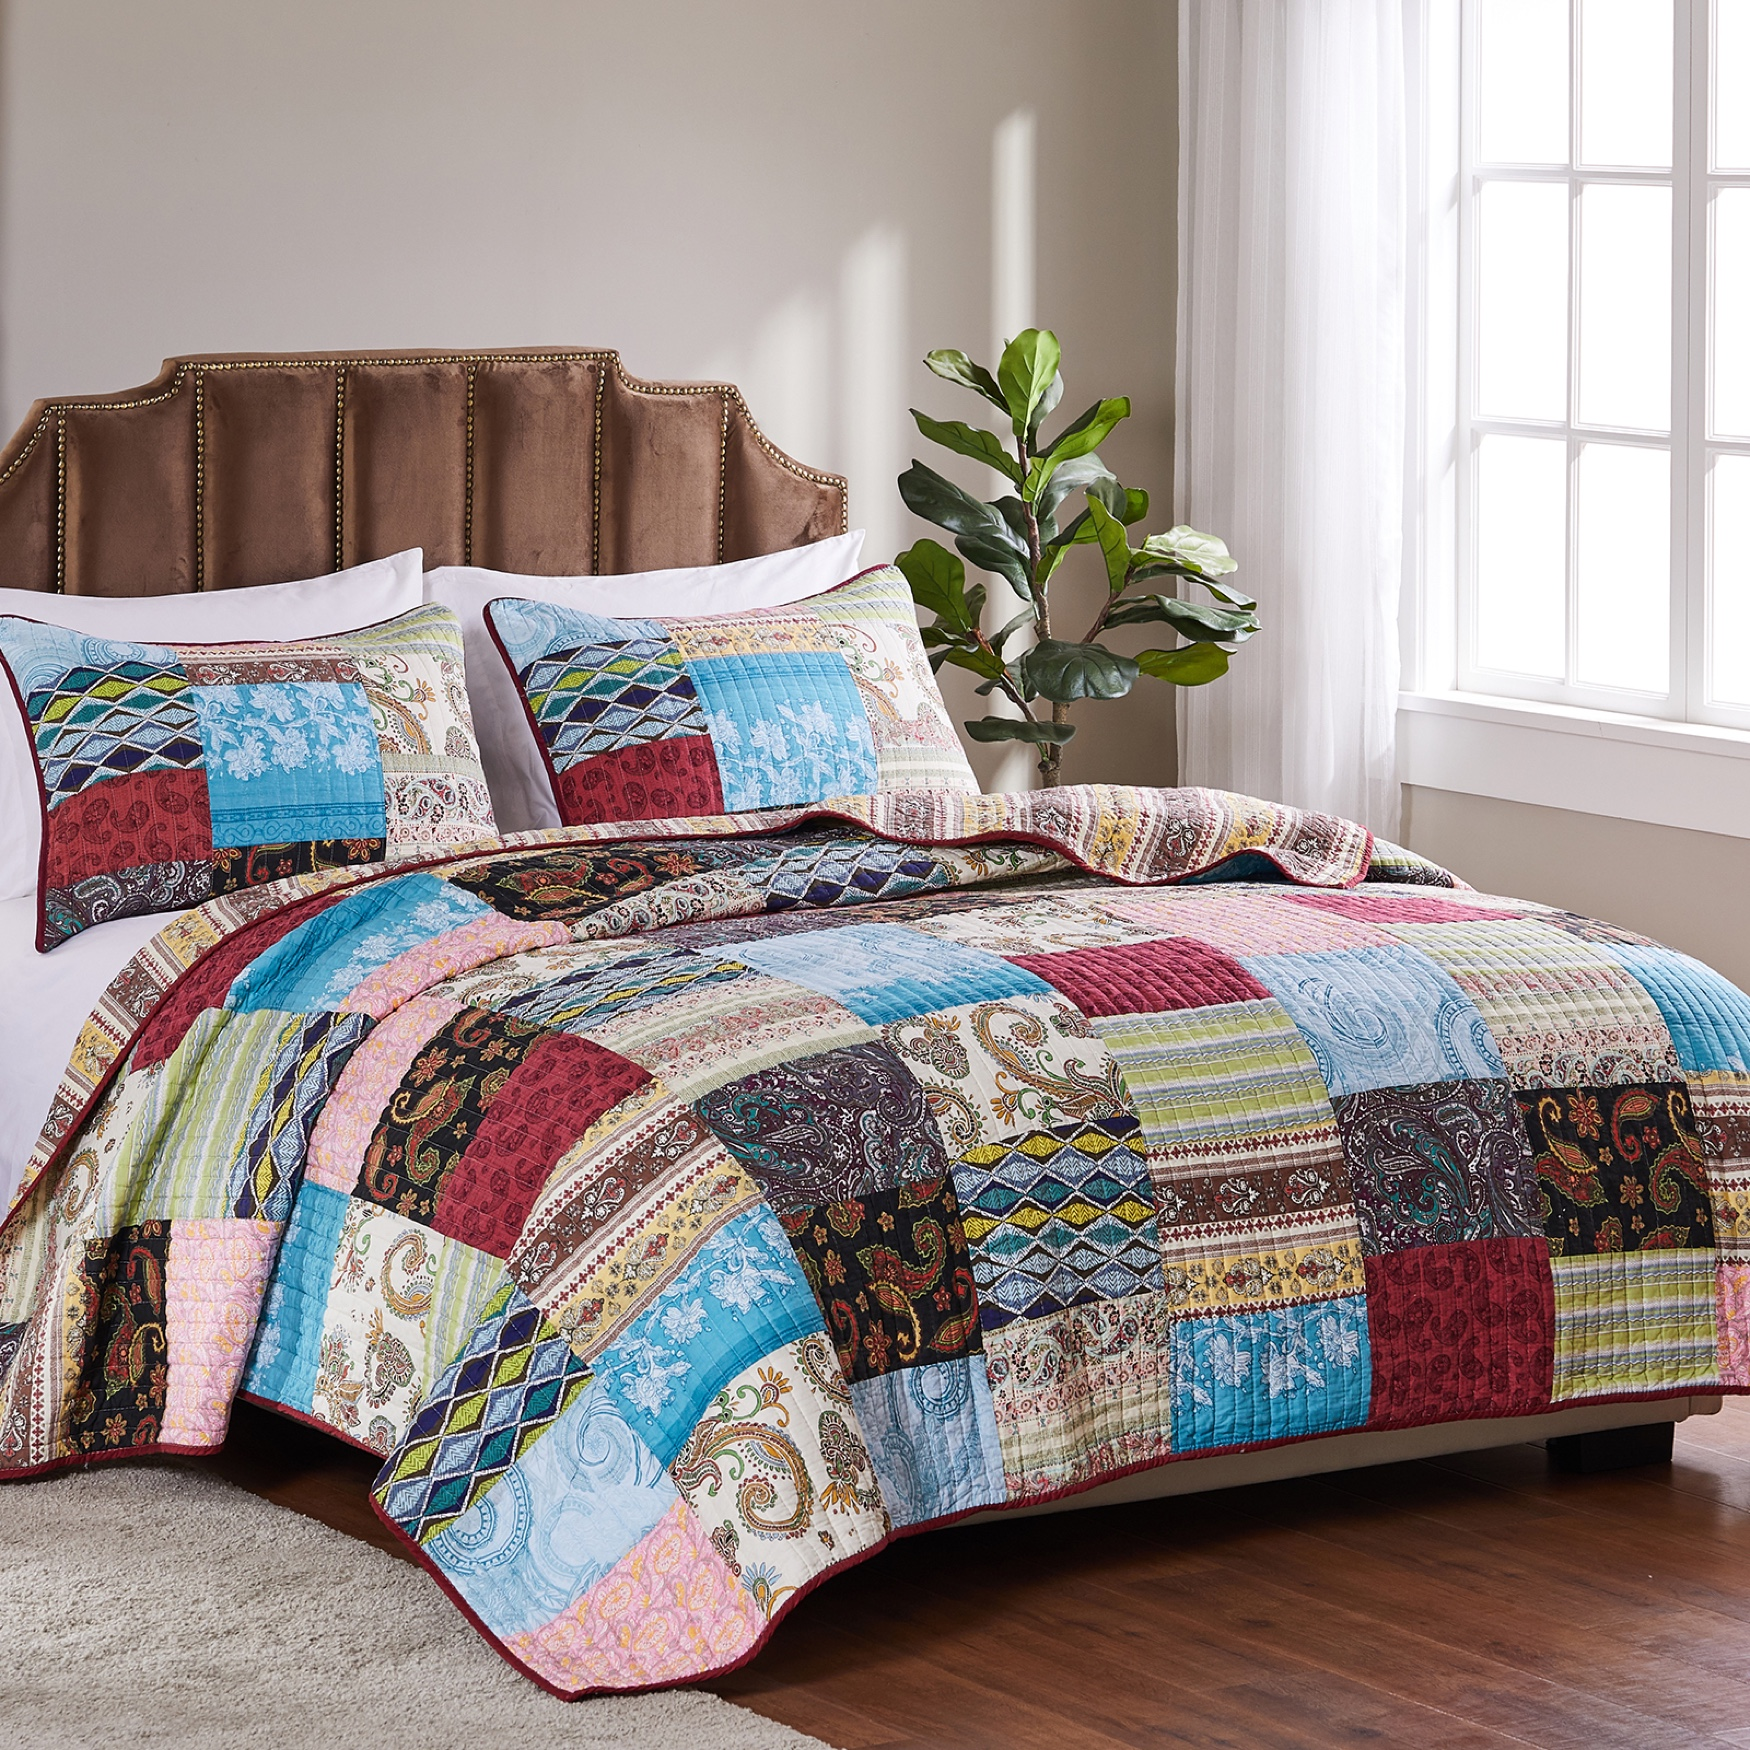 Bohemian Dream Quilt Set by Greenland Home Fashions,